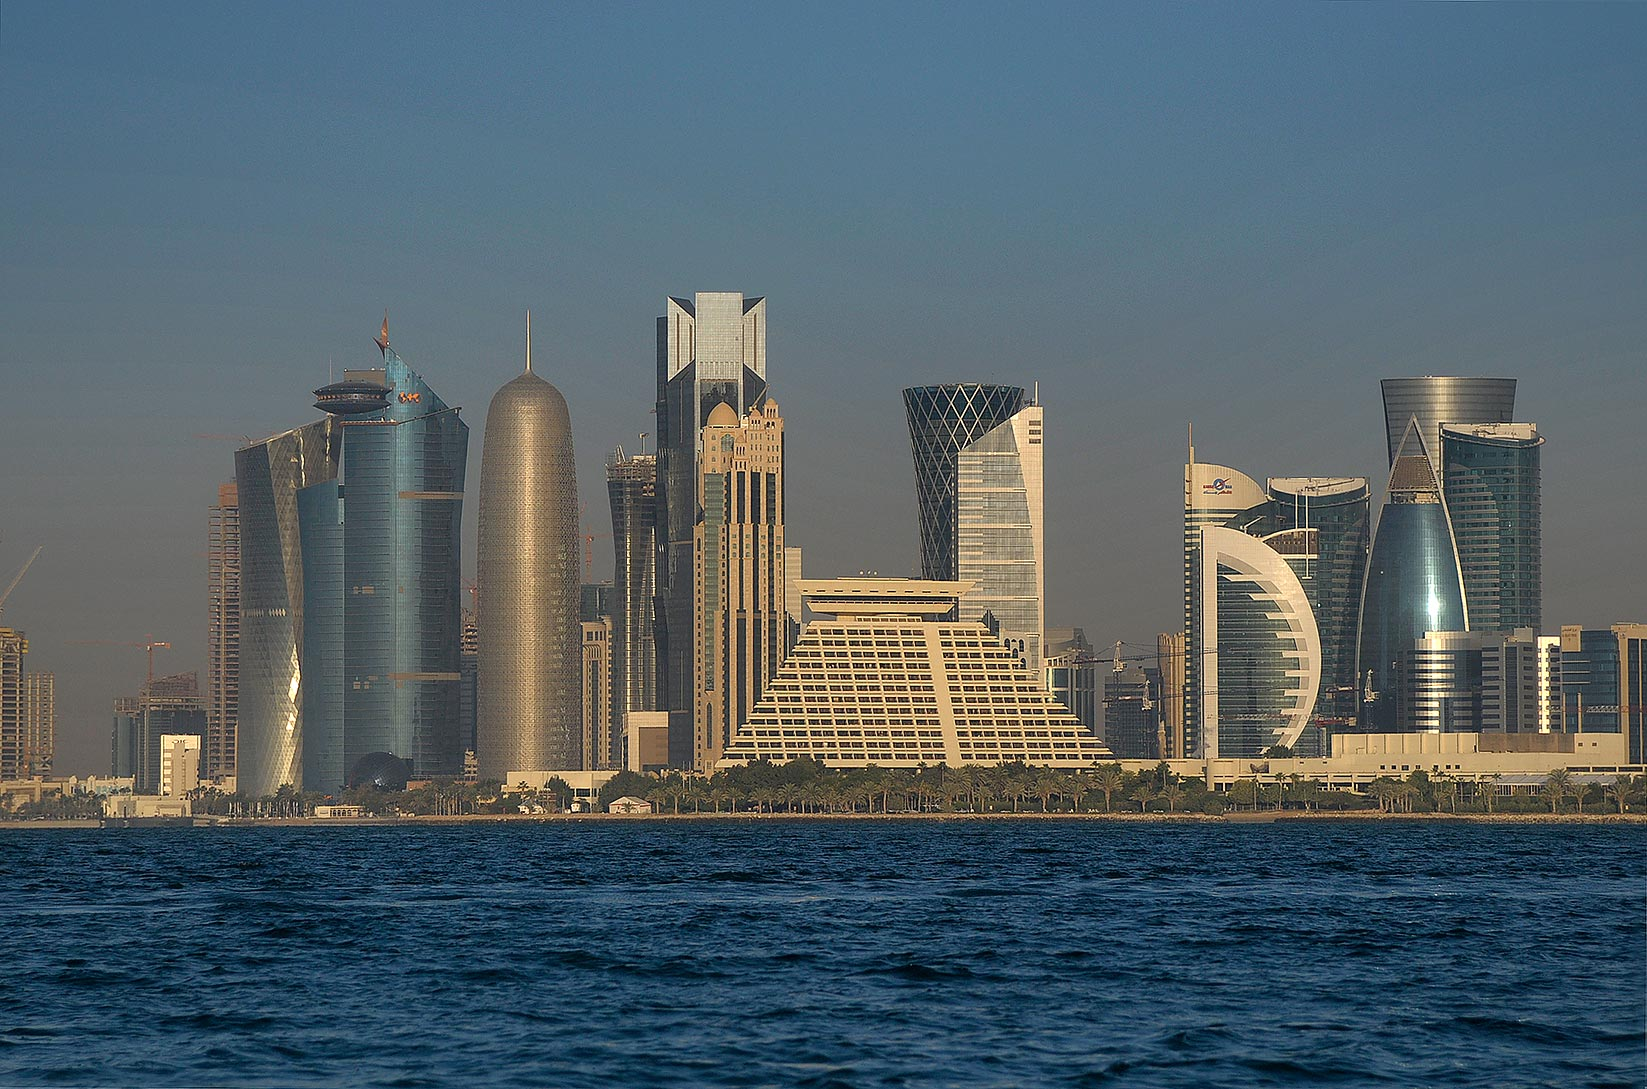 View of Sheraton Hotel and West Bay in Doha from a boat. Qatar